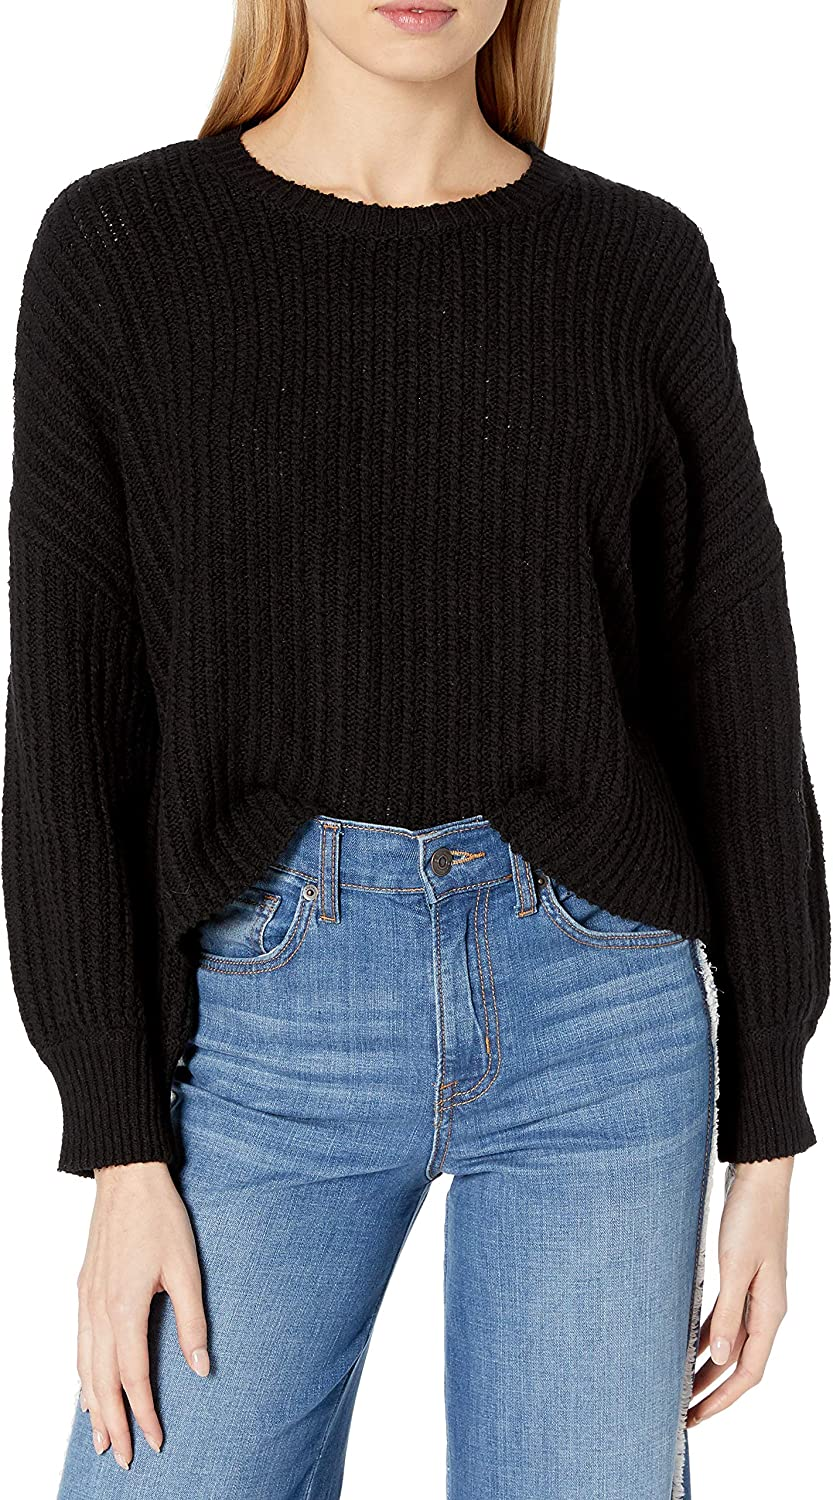 RVCA Women's Sweater Louder Challenge the Japan Maker New lowest price of Japan